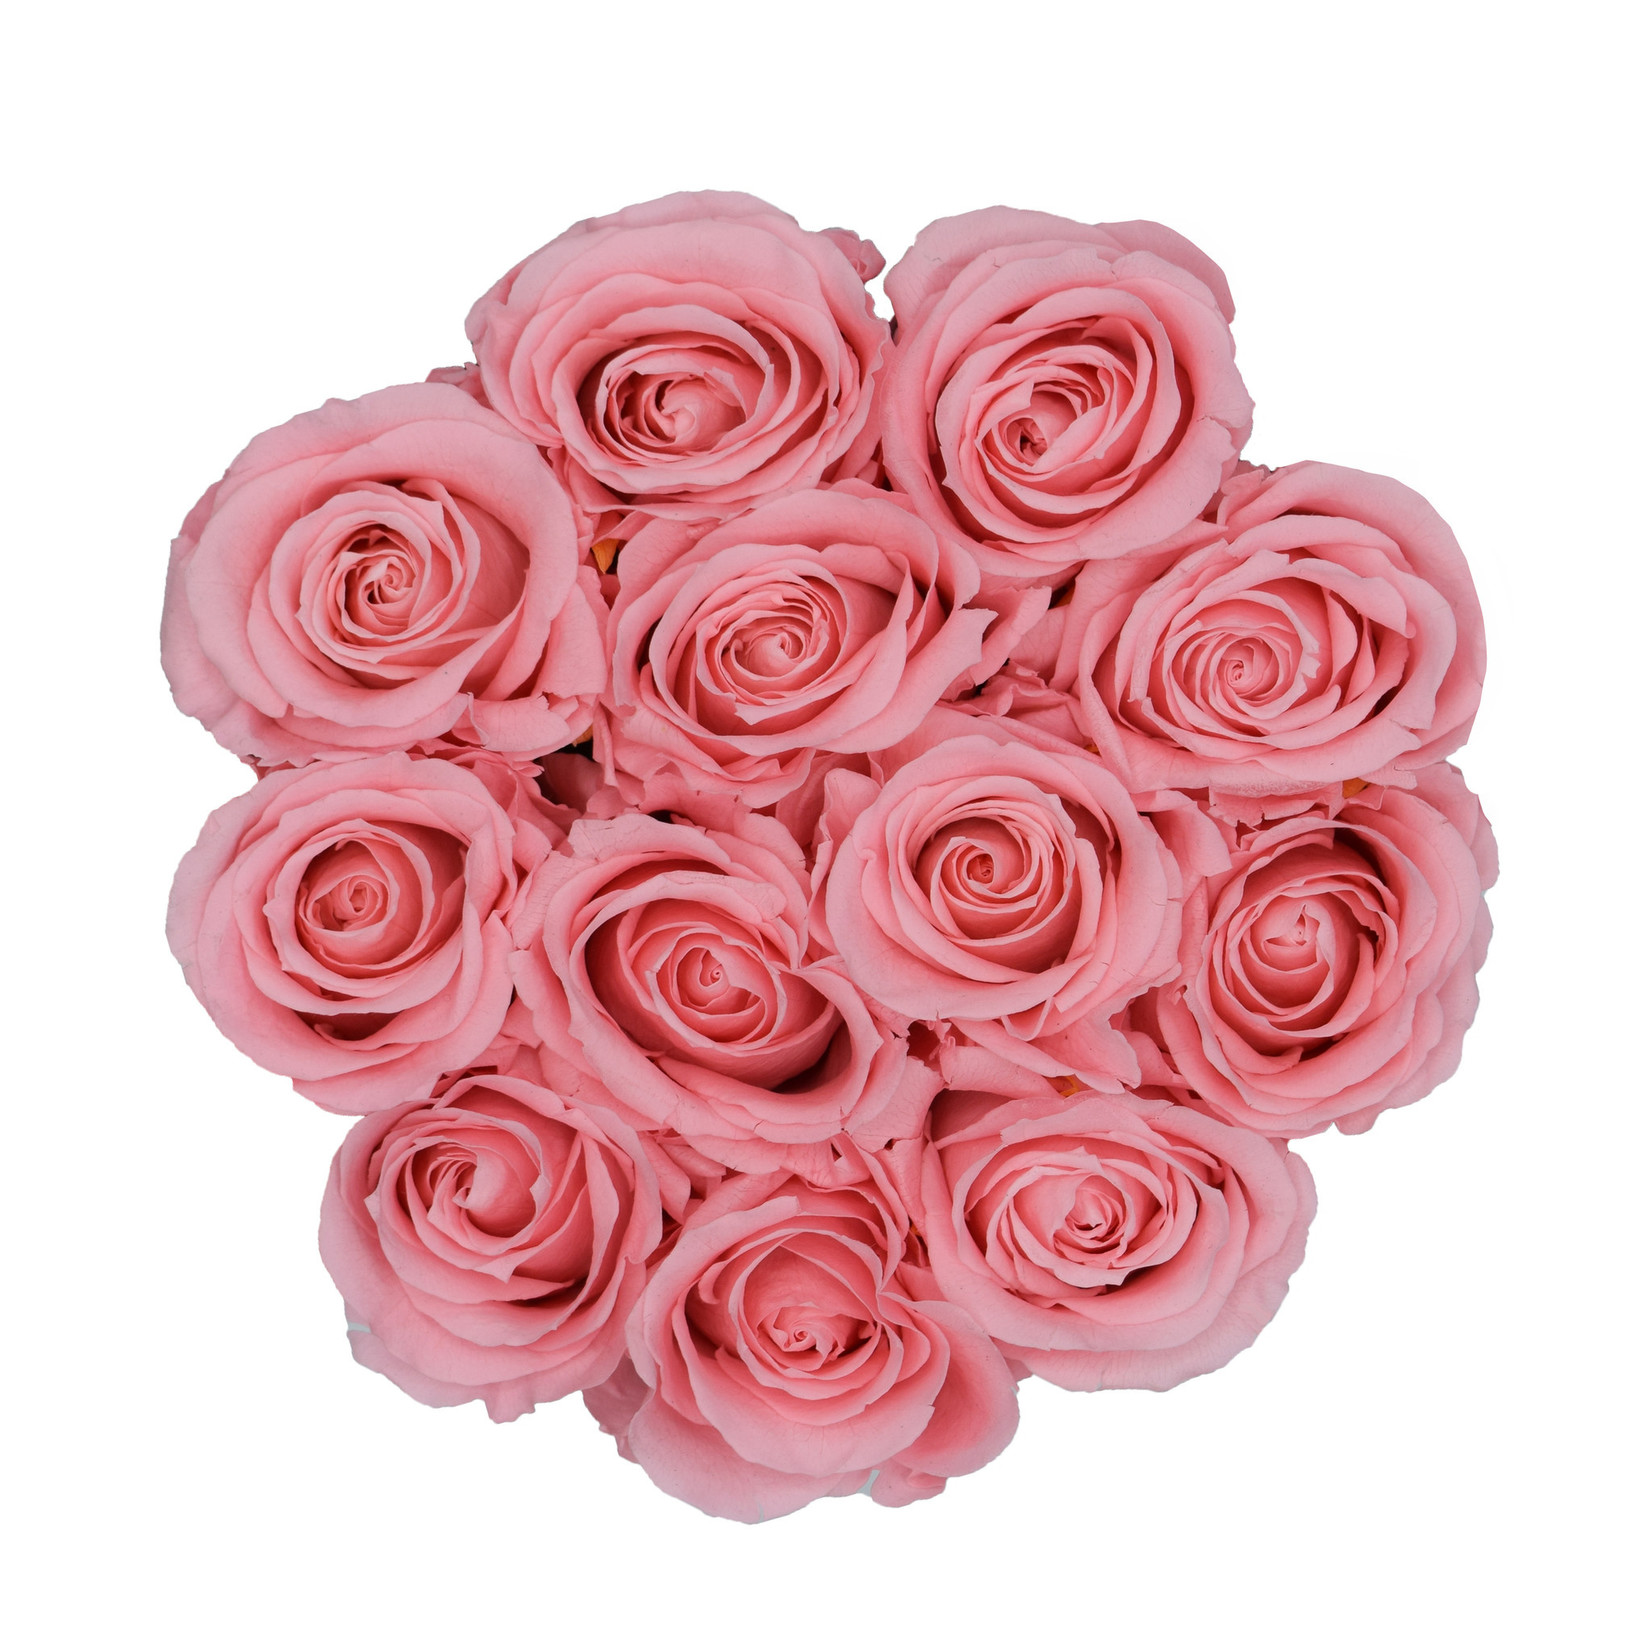 Small - Pink Endless Roses - White Box